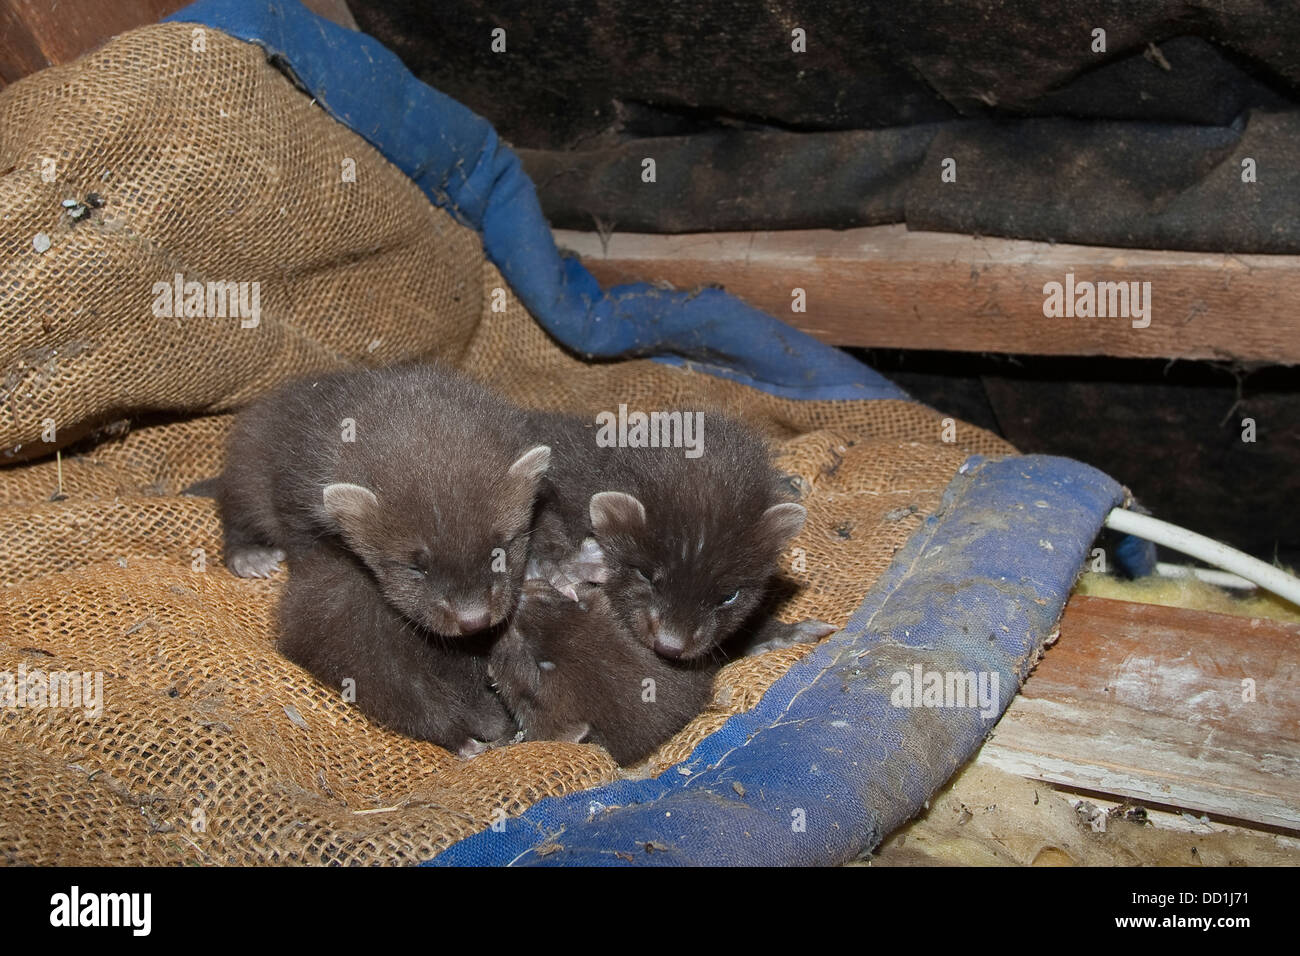 european pine marten baby baummarder tierbaby baum marder stock photo royalty free image. Black Bedroom Furniture Sets. Home Design Ideas